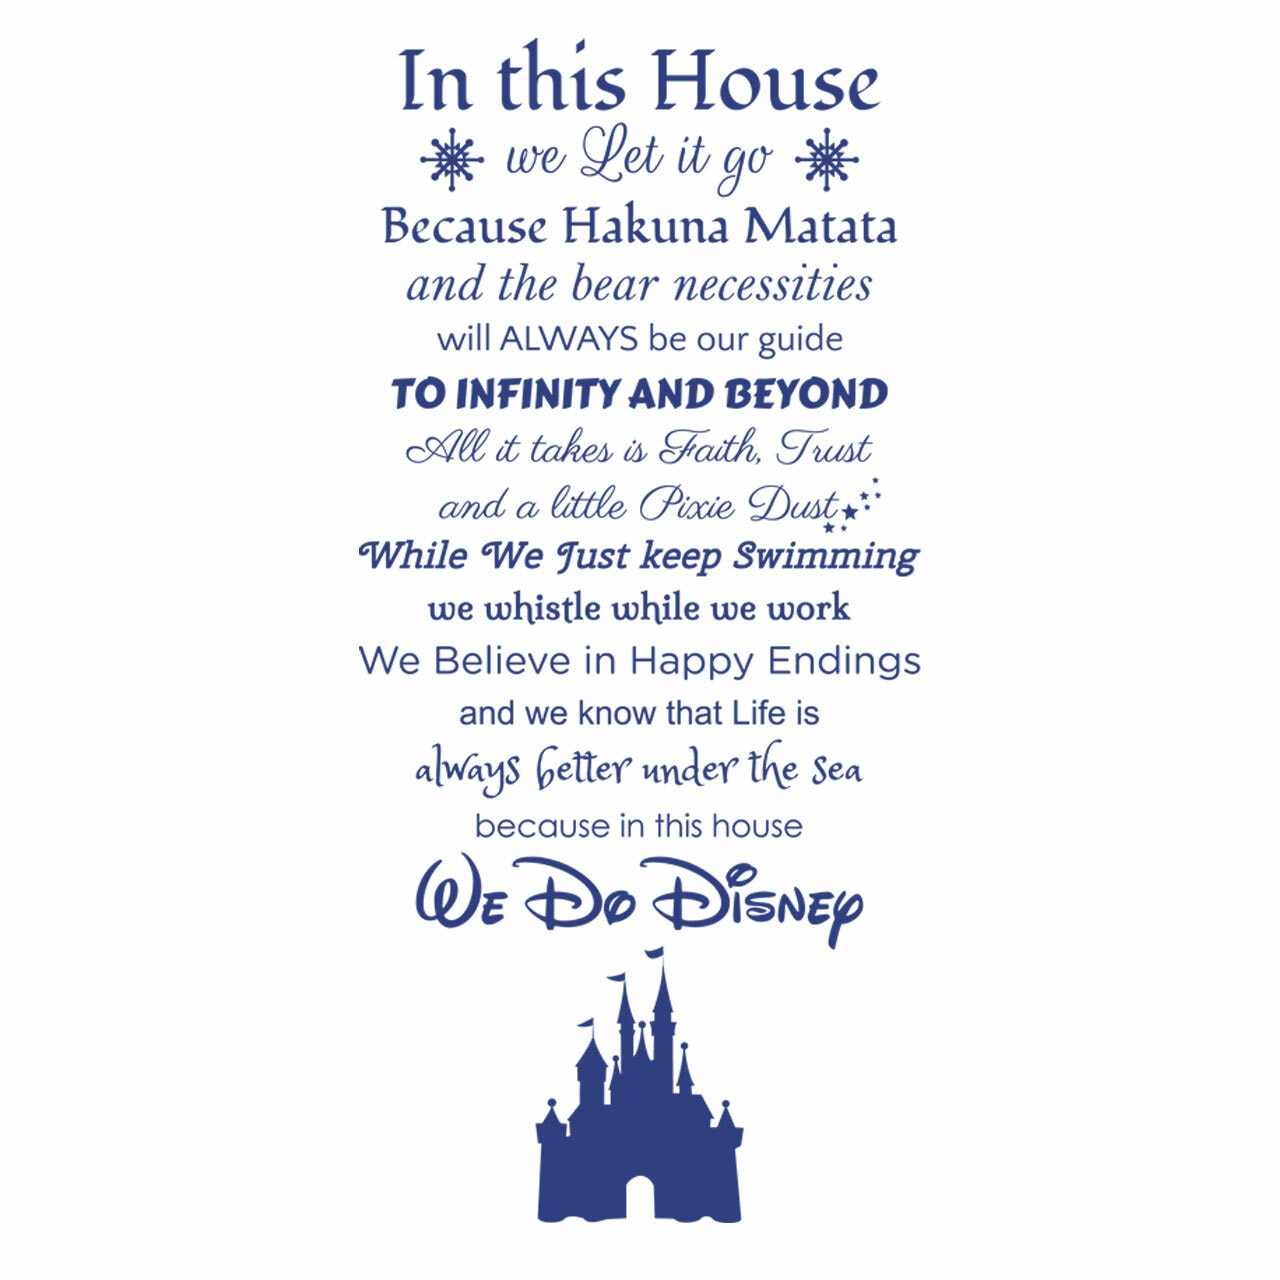 In this house we do disney quote on a white background